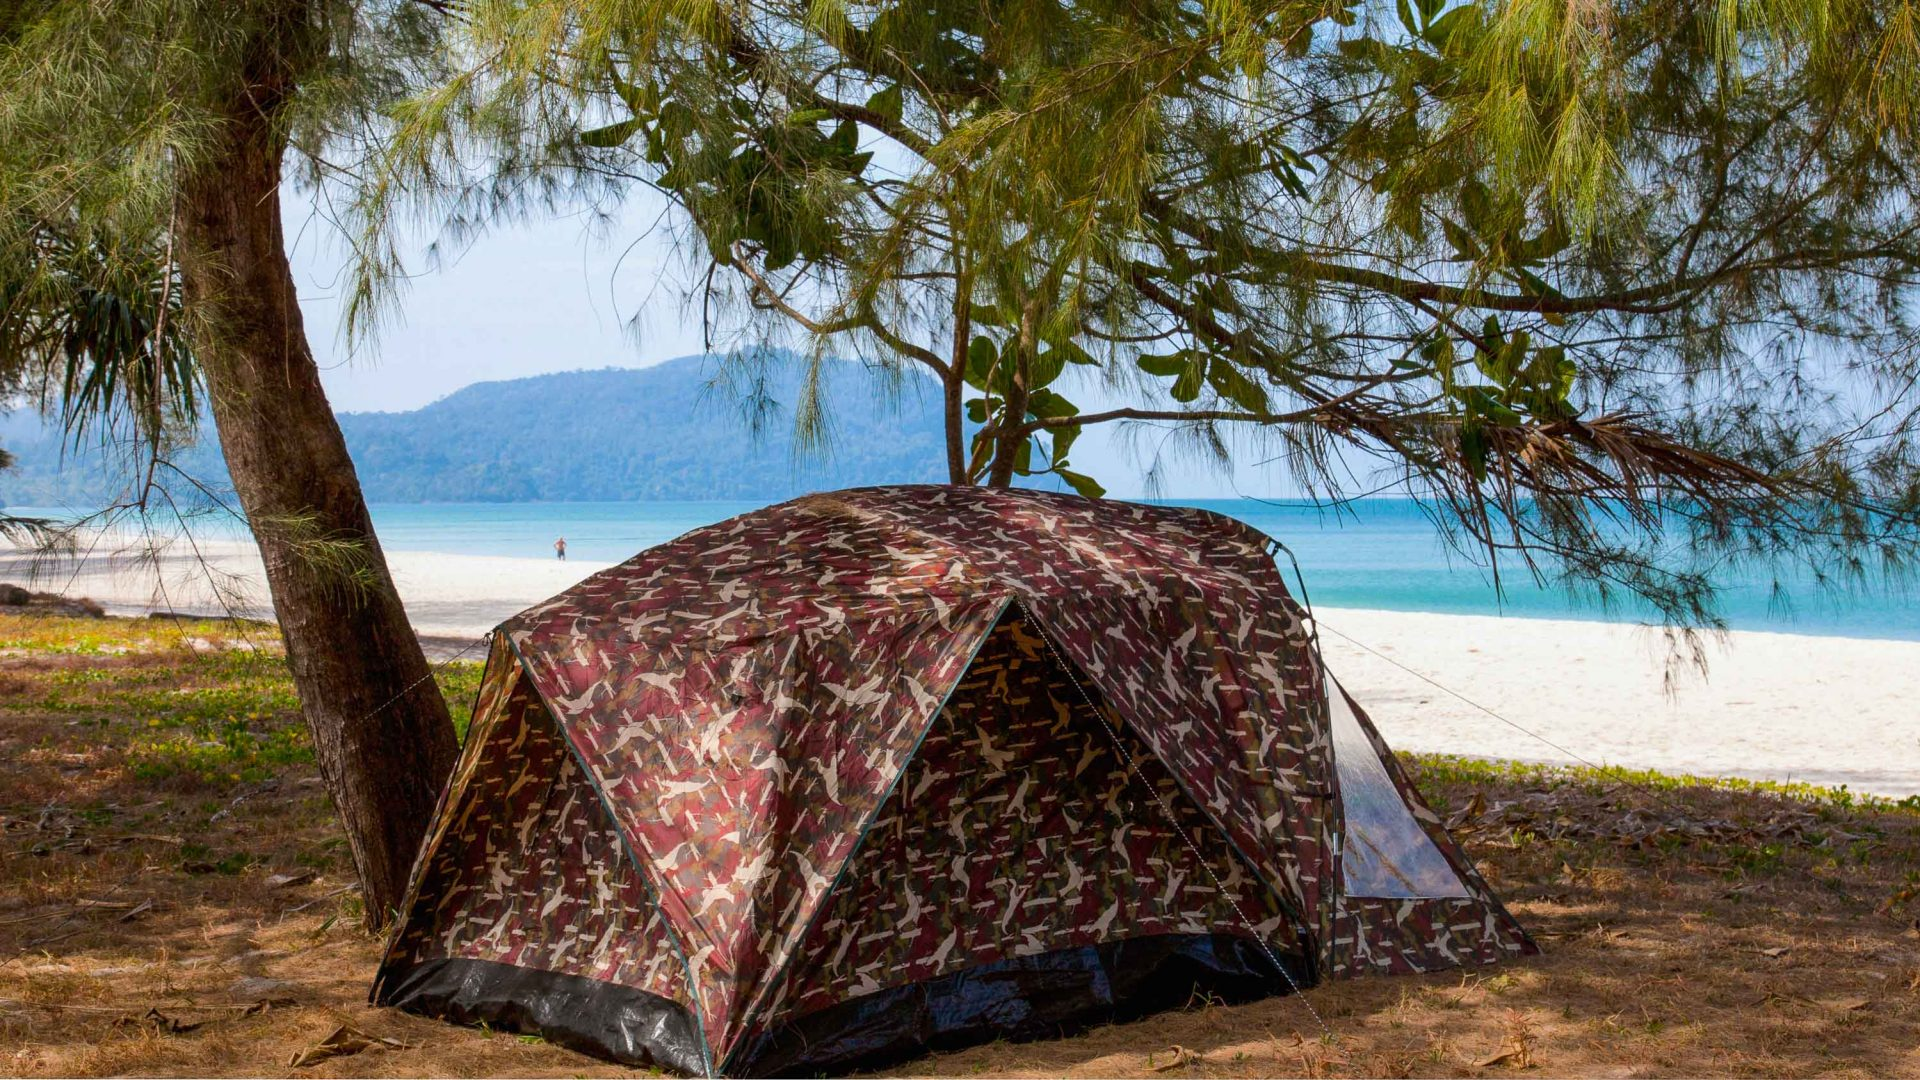 Visitors camping at Ao Pante Malaka Bay on Koh Tarutao.